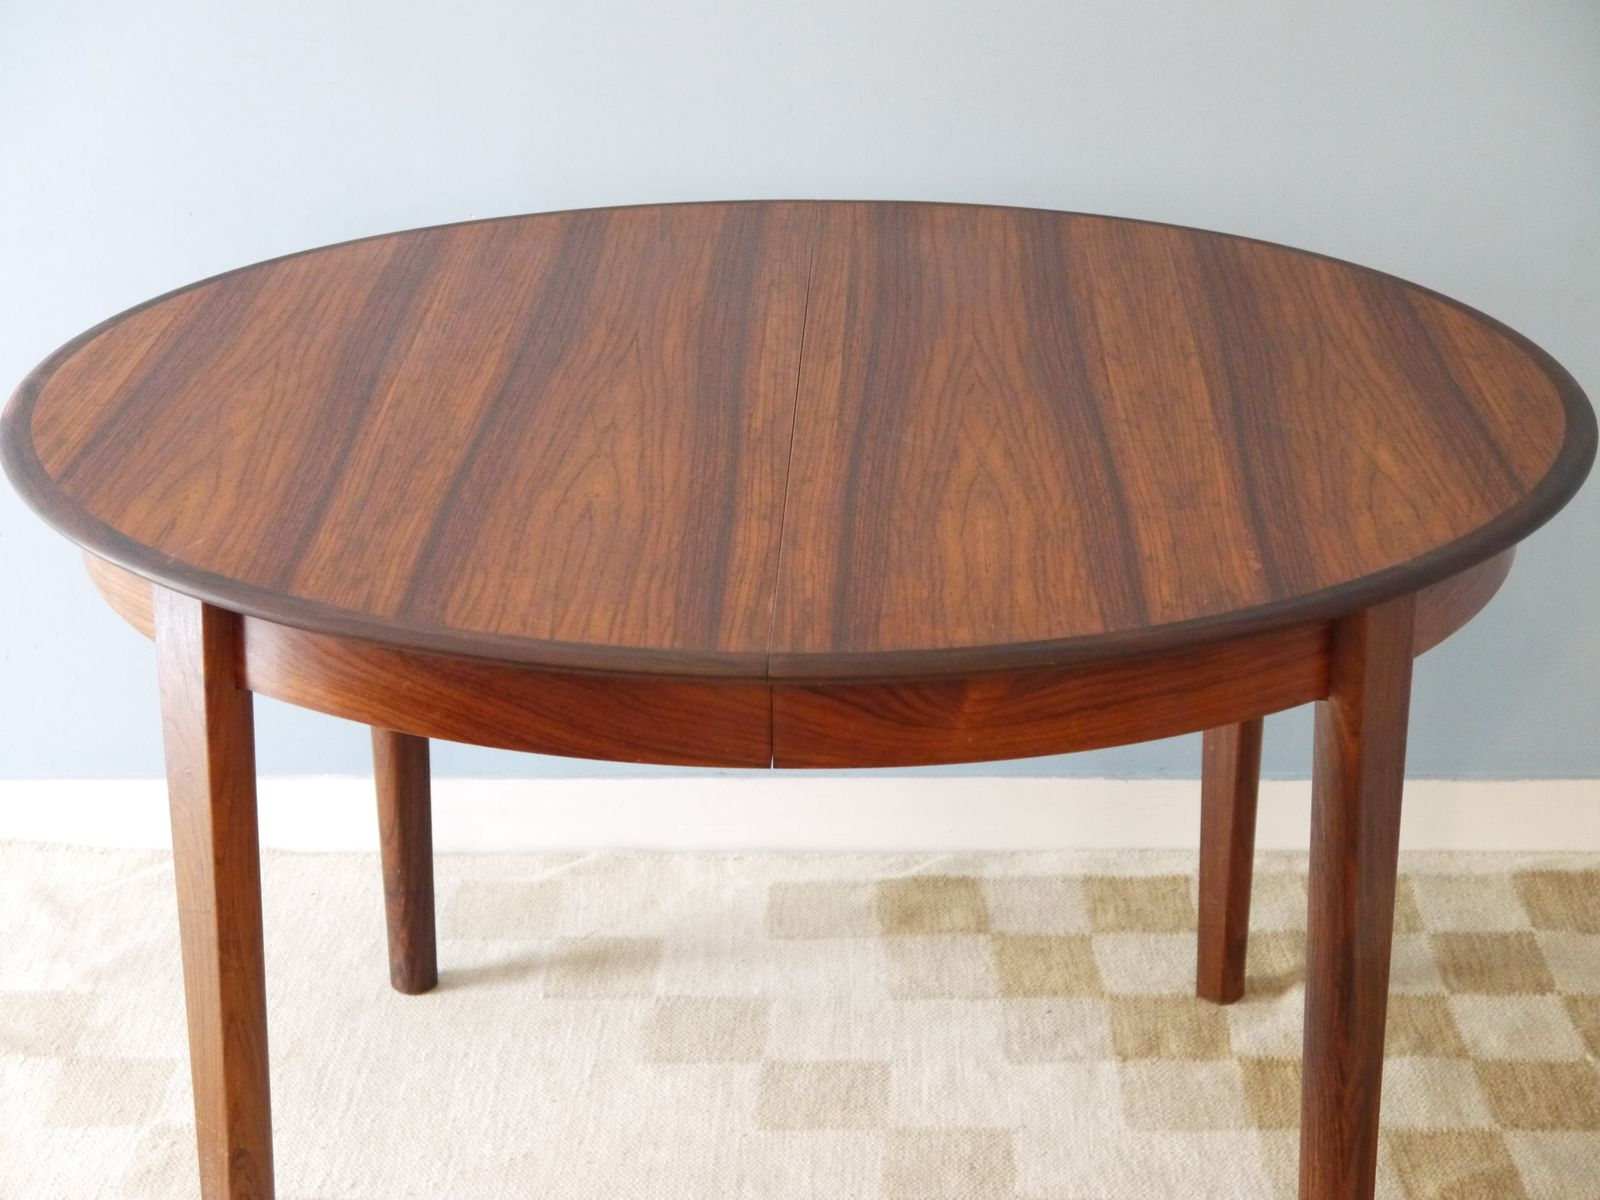 Rosewood Dining Table Danish Rosewood Dining Table From Skovby Mbelfabrik 1960s For